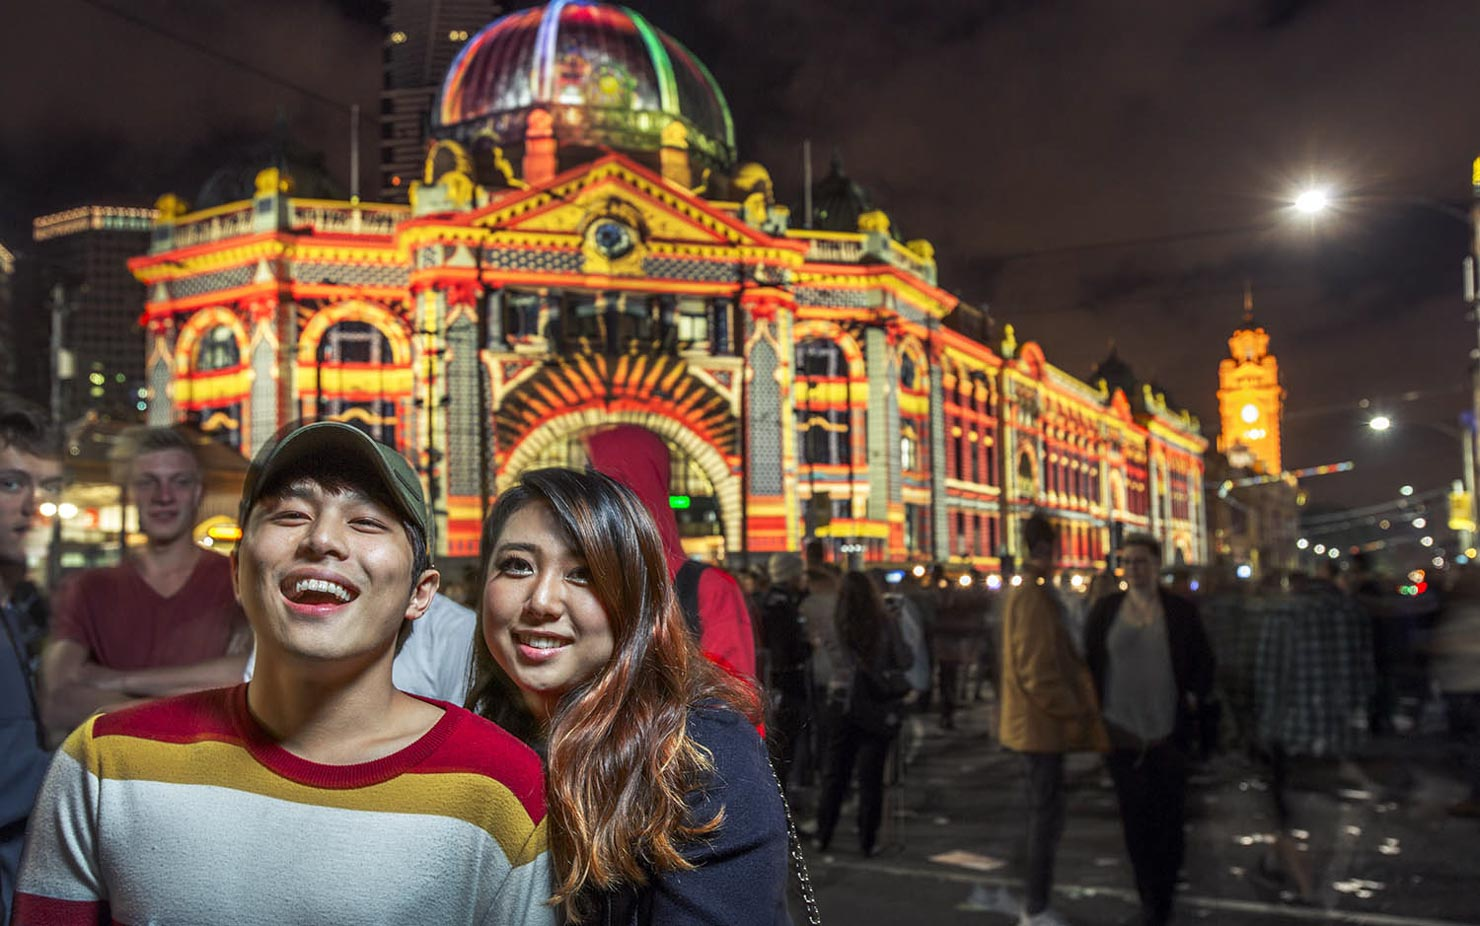 Couple outside Flinders Street Station with projections at a night time event